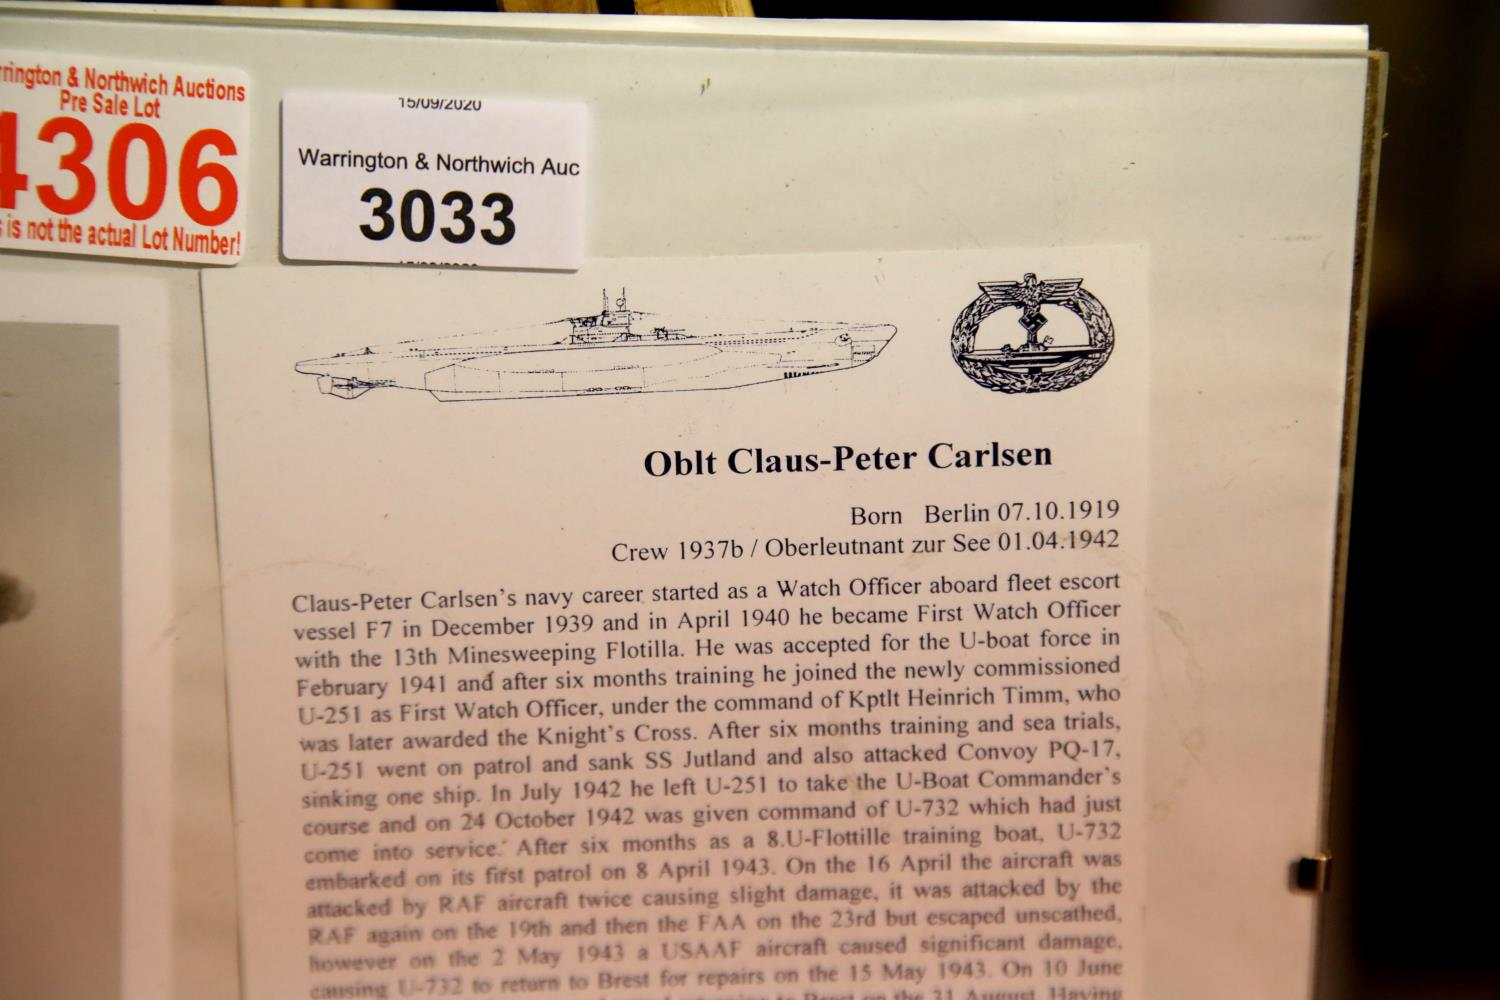 Lot 3033 - Oberleutnant Claus-Peter Carlsen, Commander of U-732 signed photograph with information. Posted